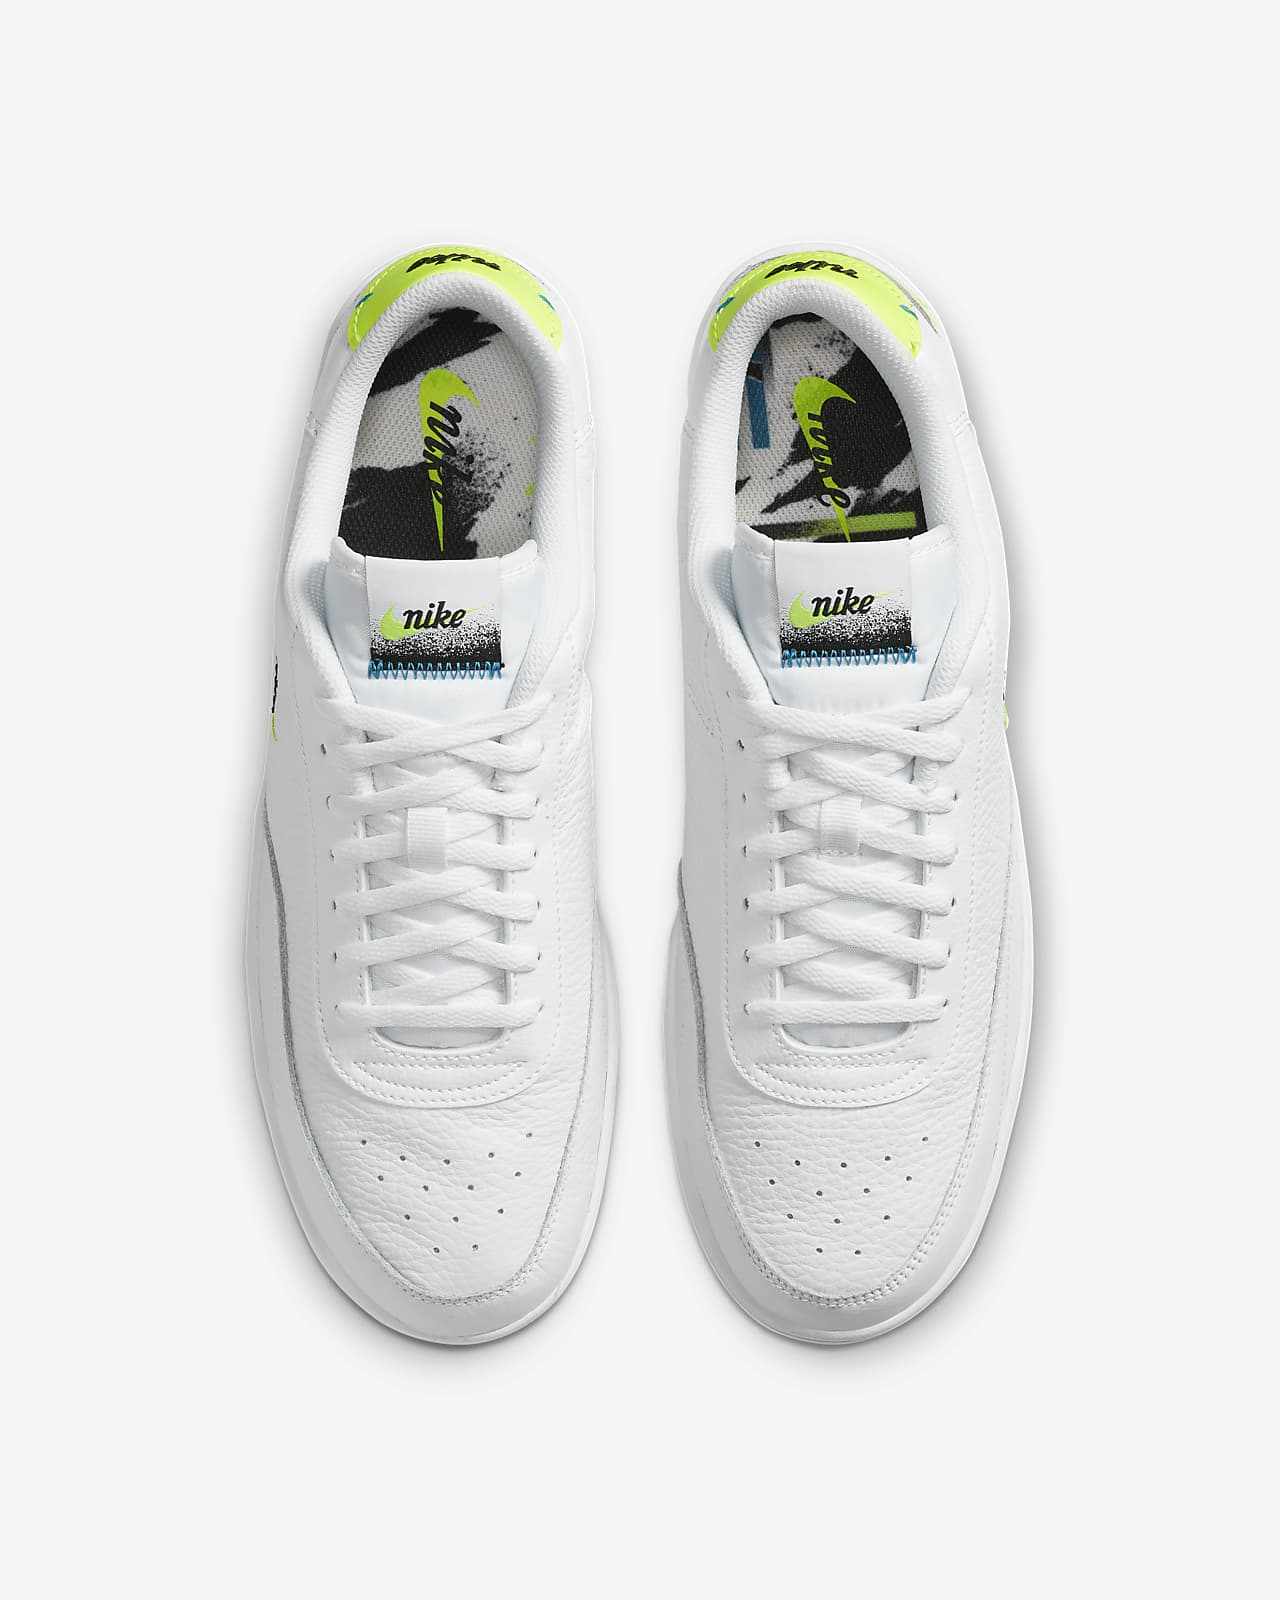 nike court force verdes